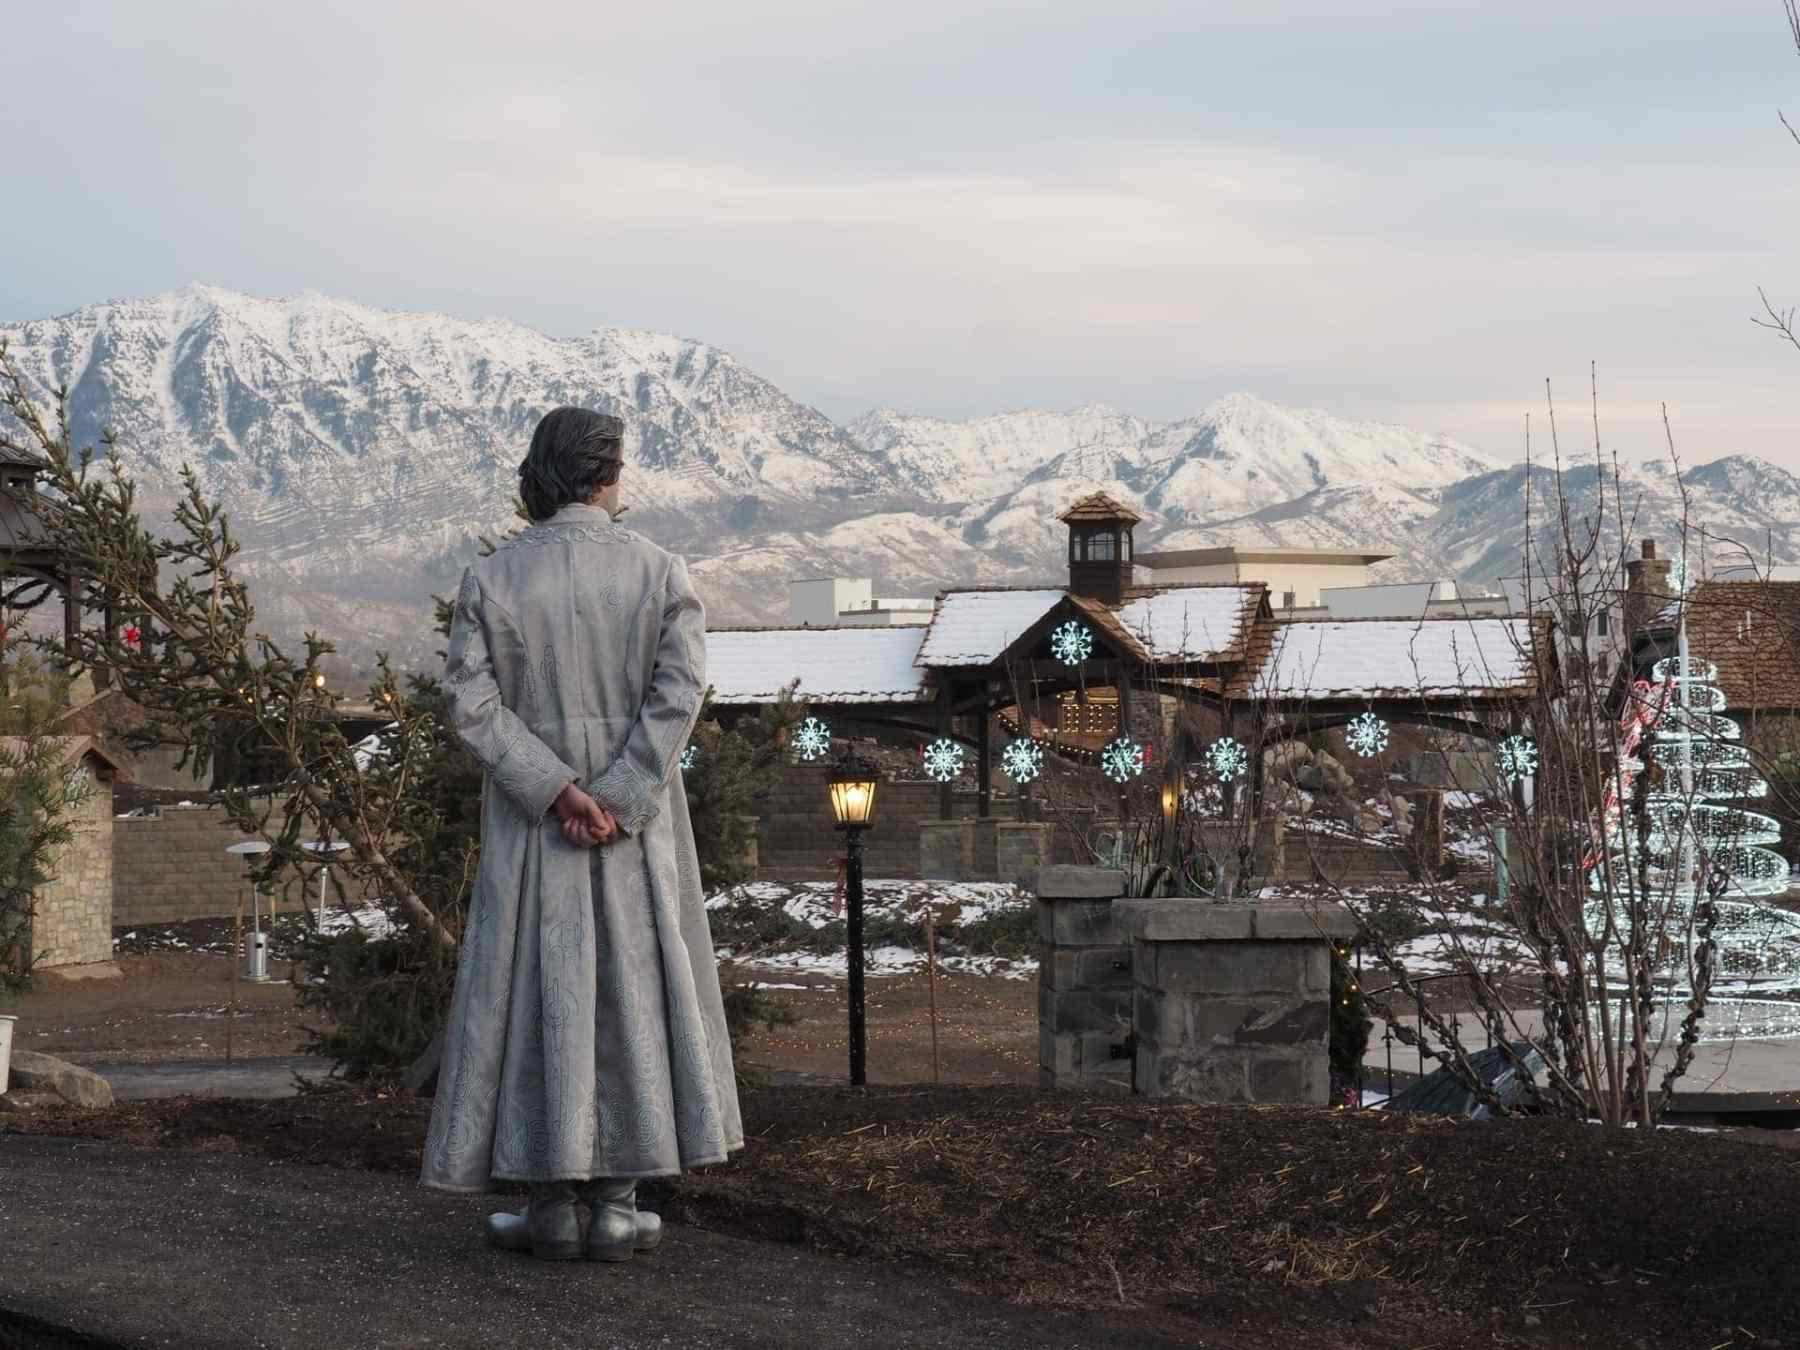 The Wasatch Mountains make the perfect backdrop for Evermore